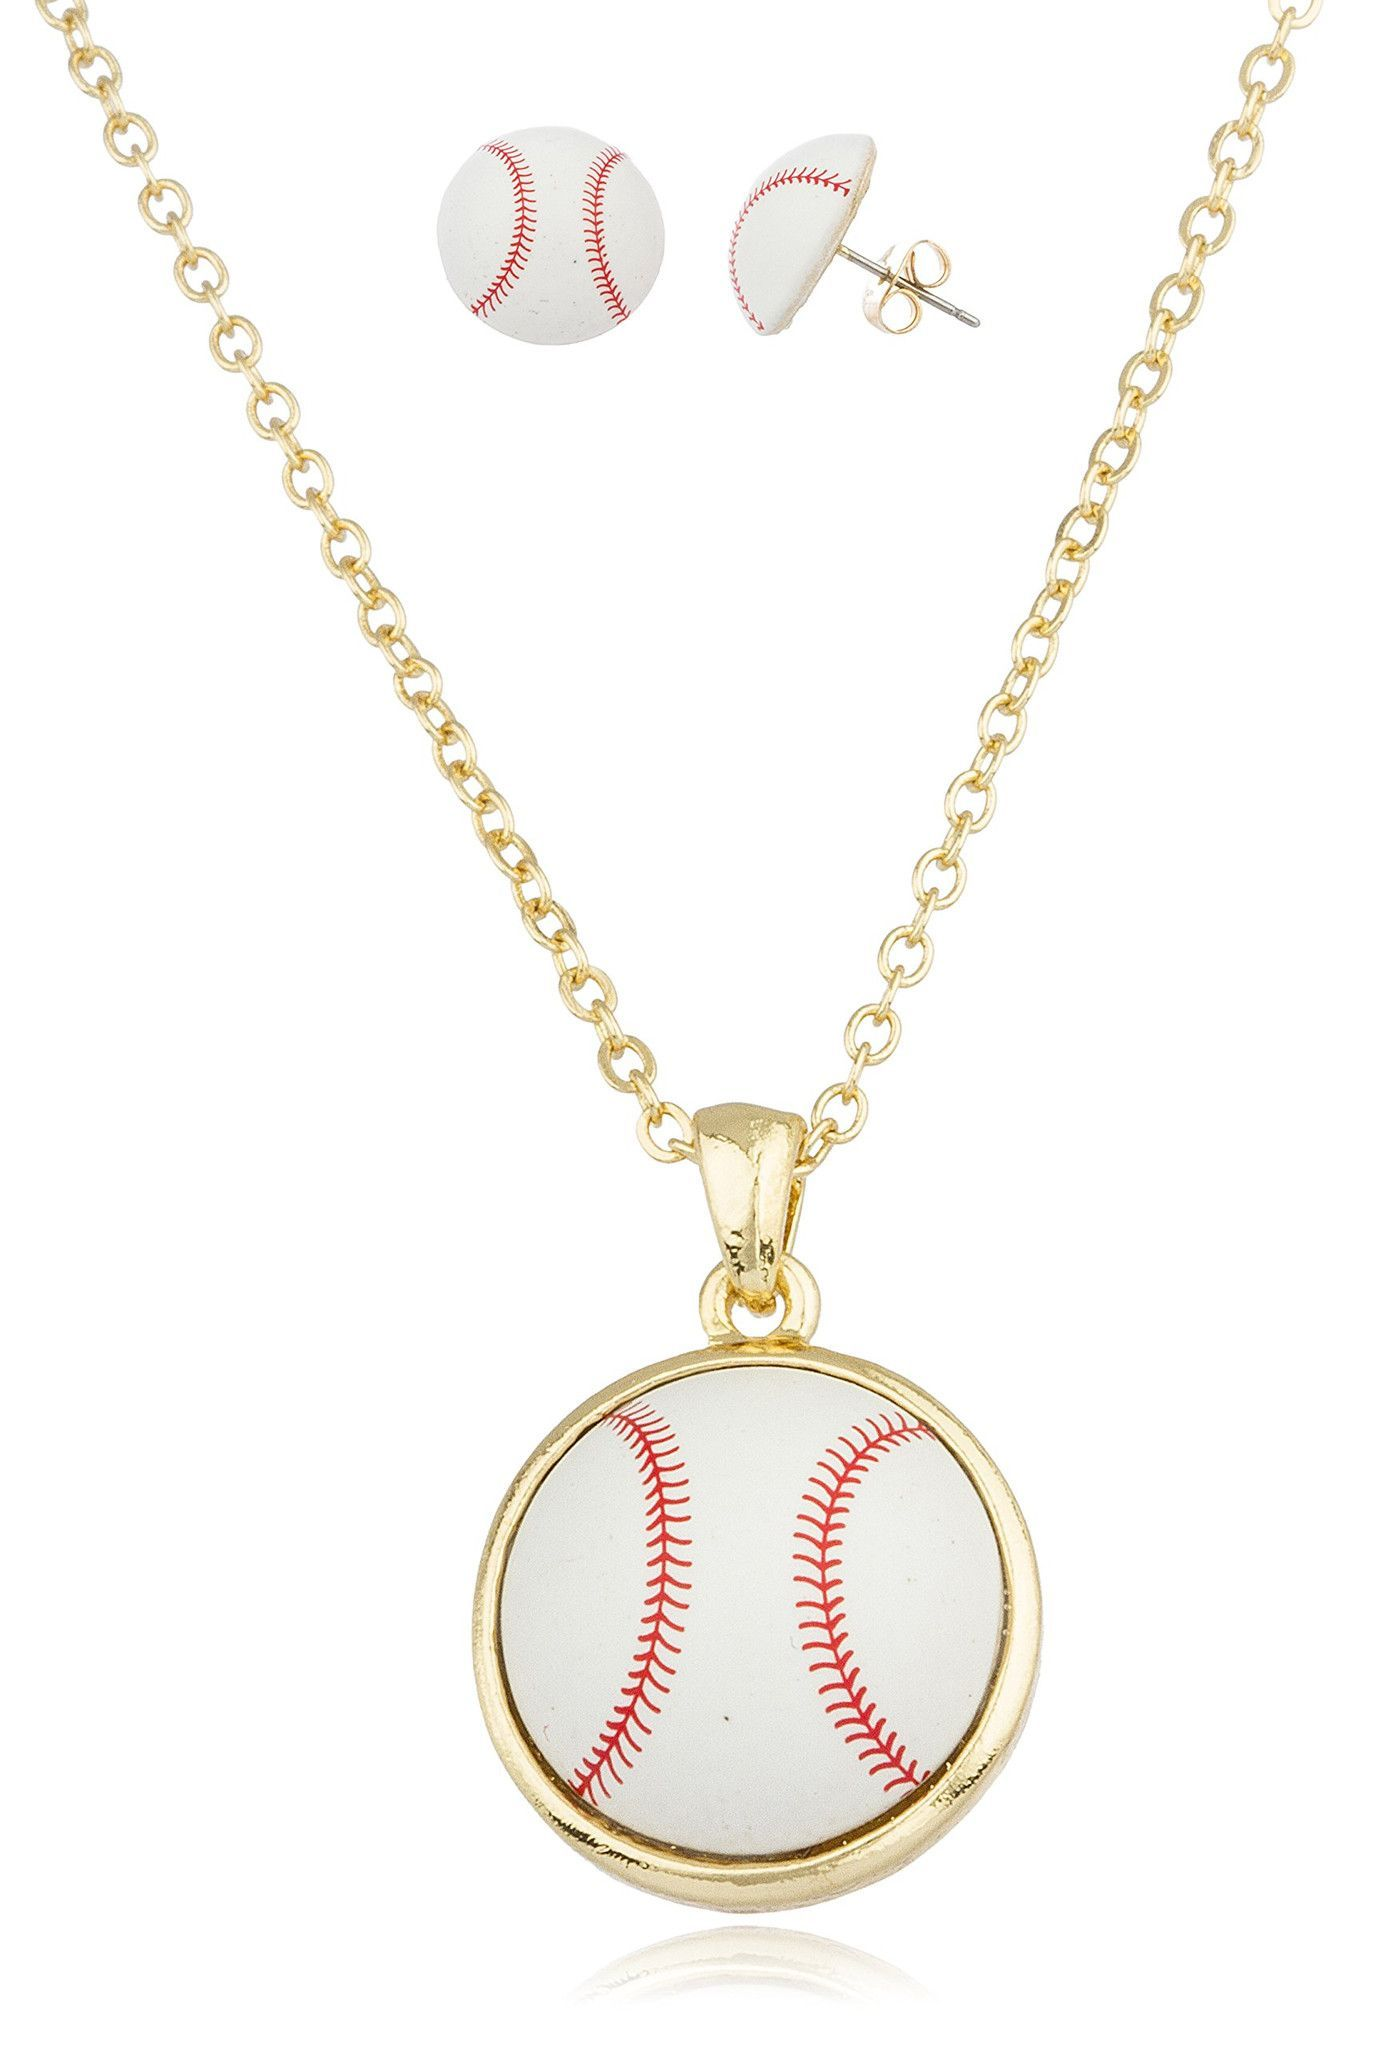 Goldtone with white baseball pendant with an 18 inch link necklace goldtone with white baseball pendant with an 18 inch link necklace and matching earrings jewelry set aloadofball Gallery